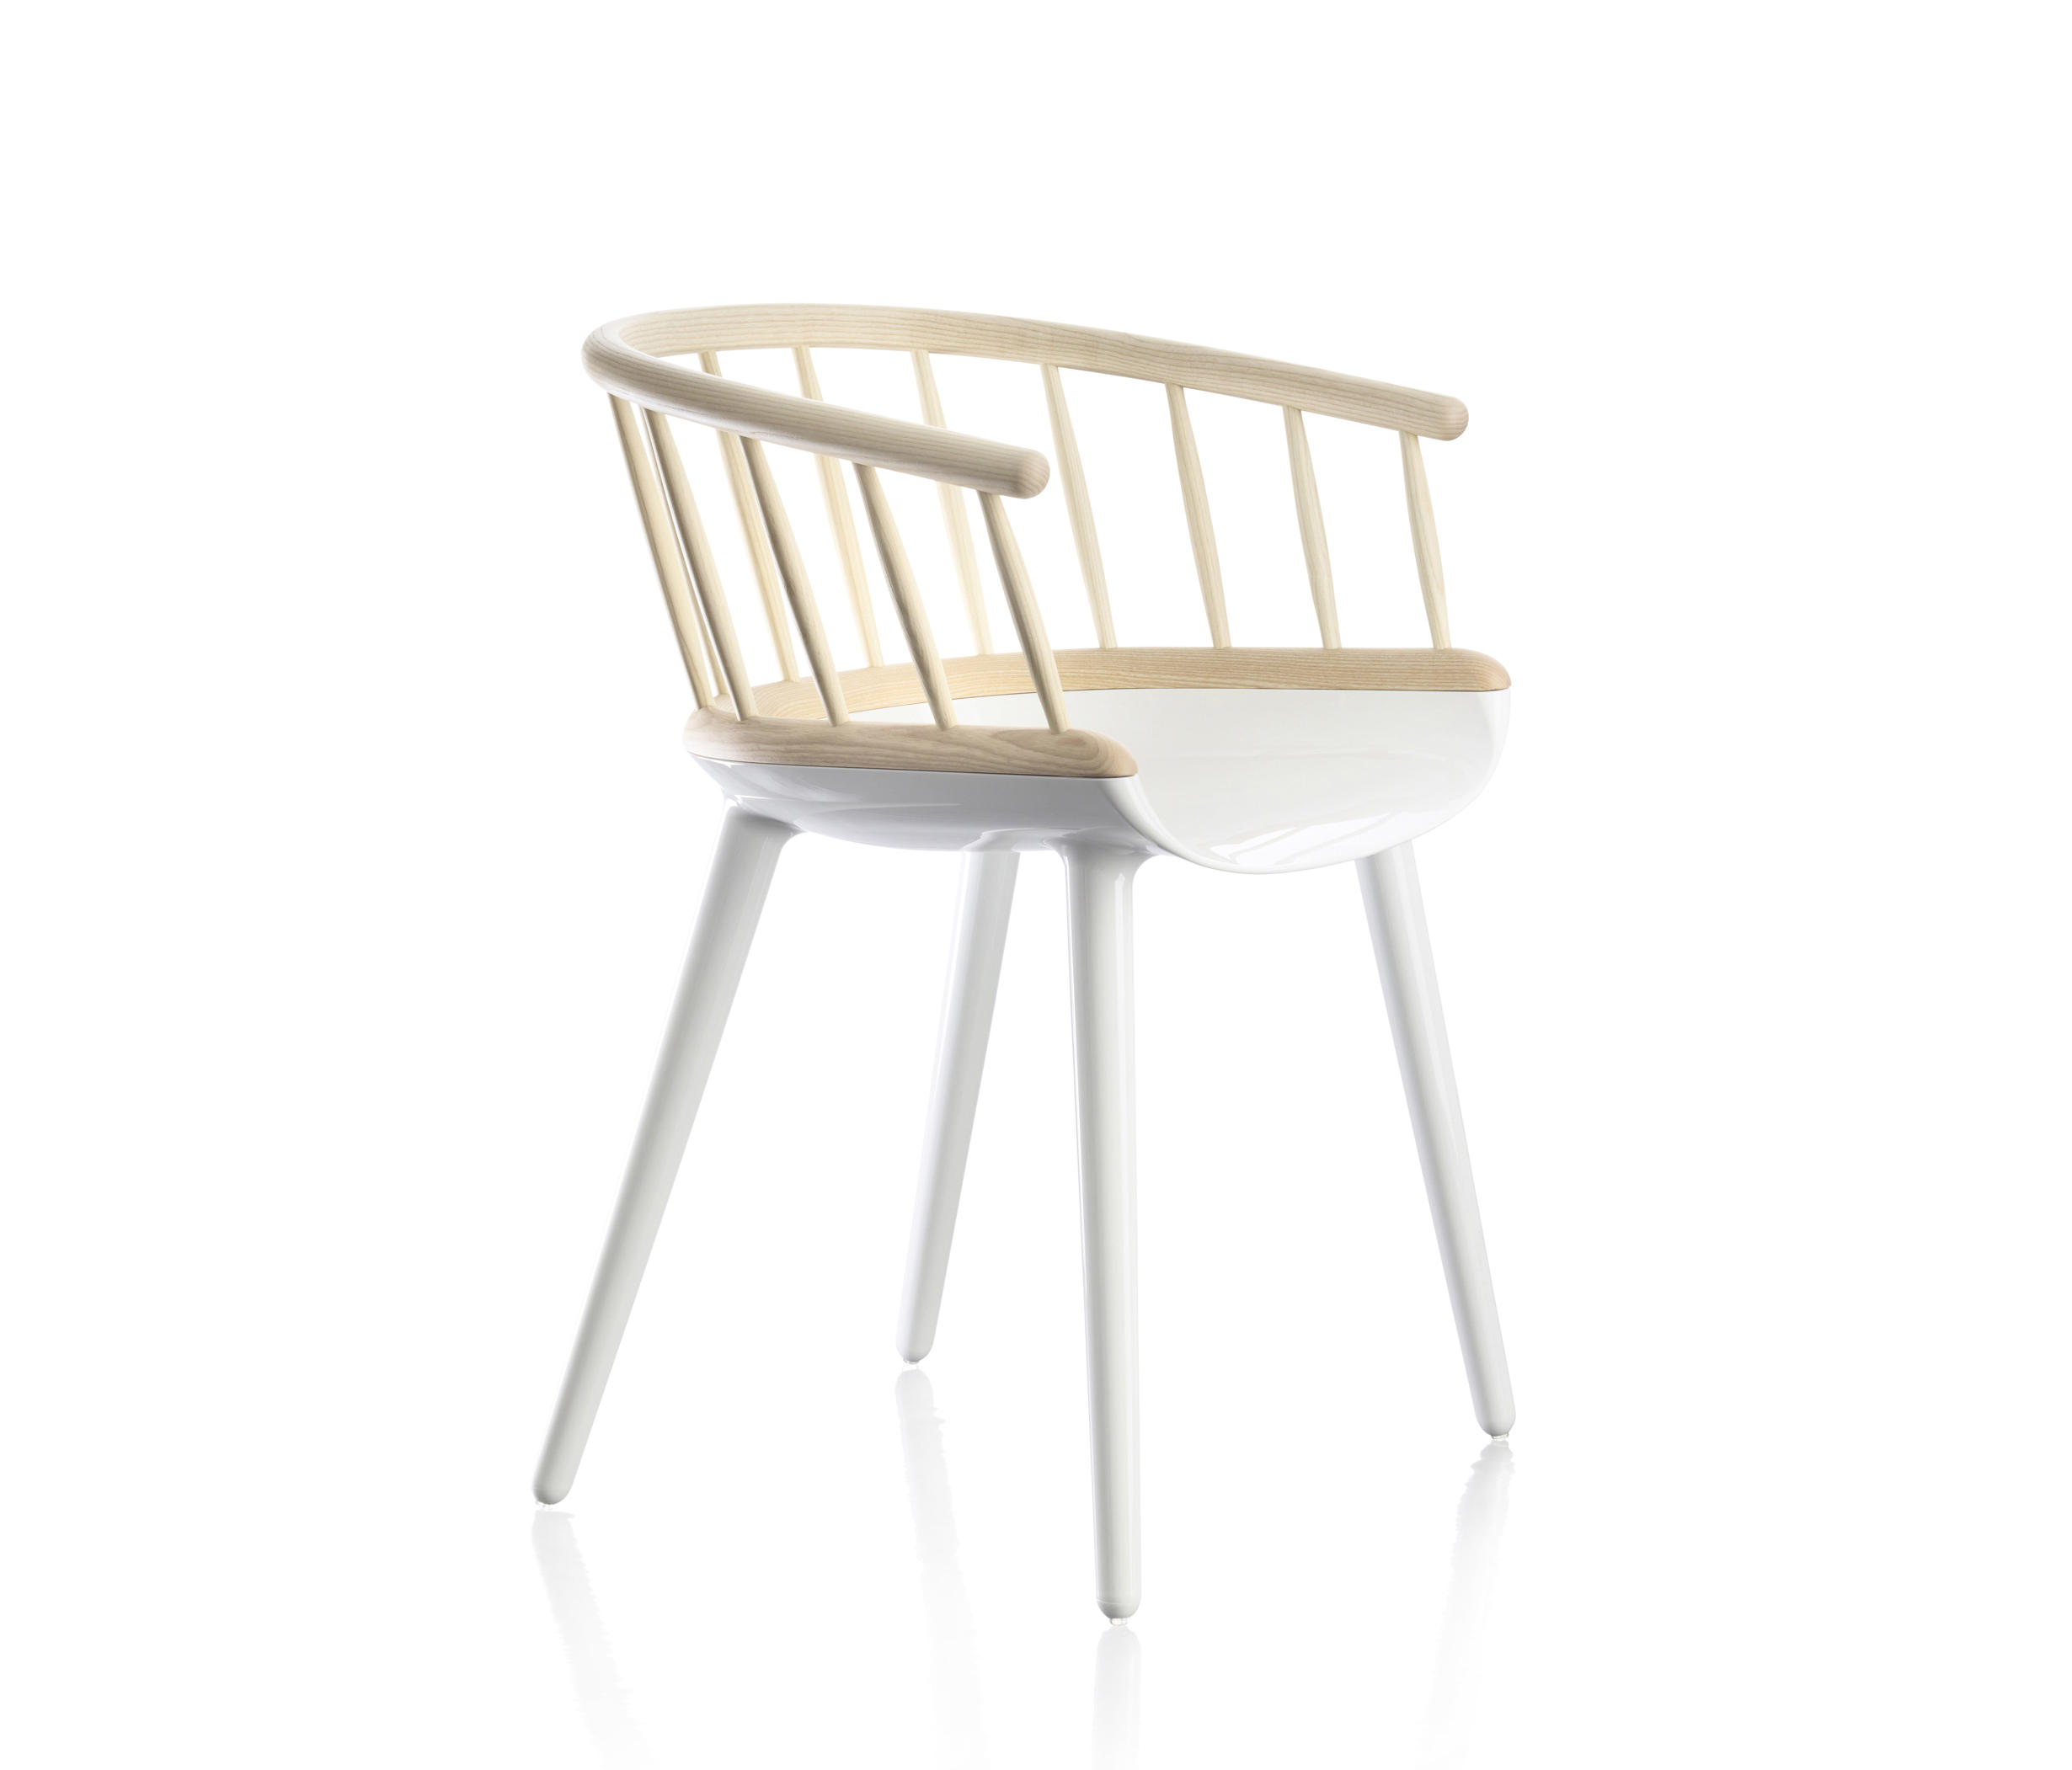 Cyborg stick chair chairs from magis architonic for Magis chair